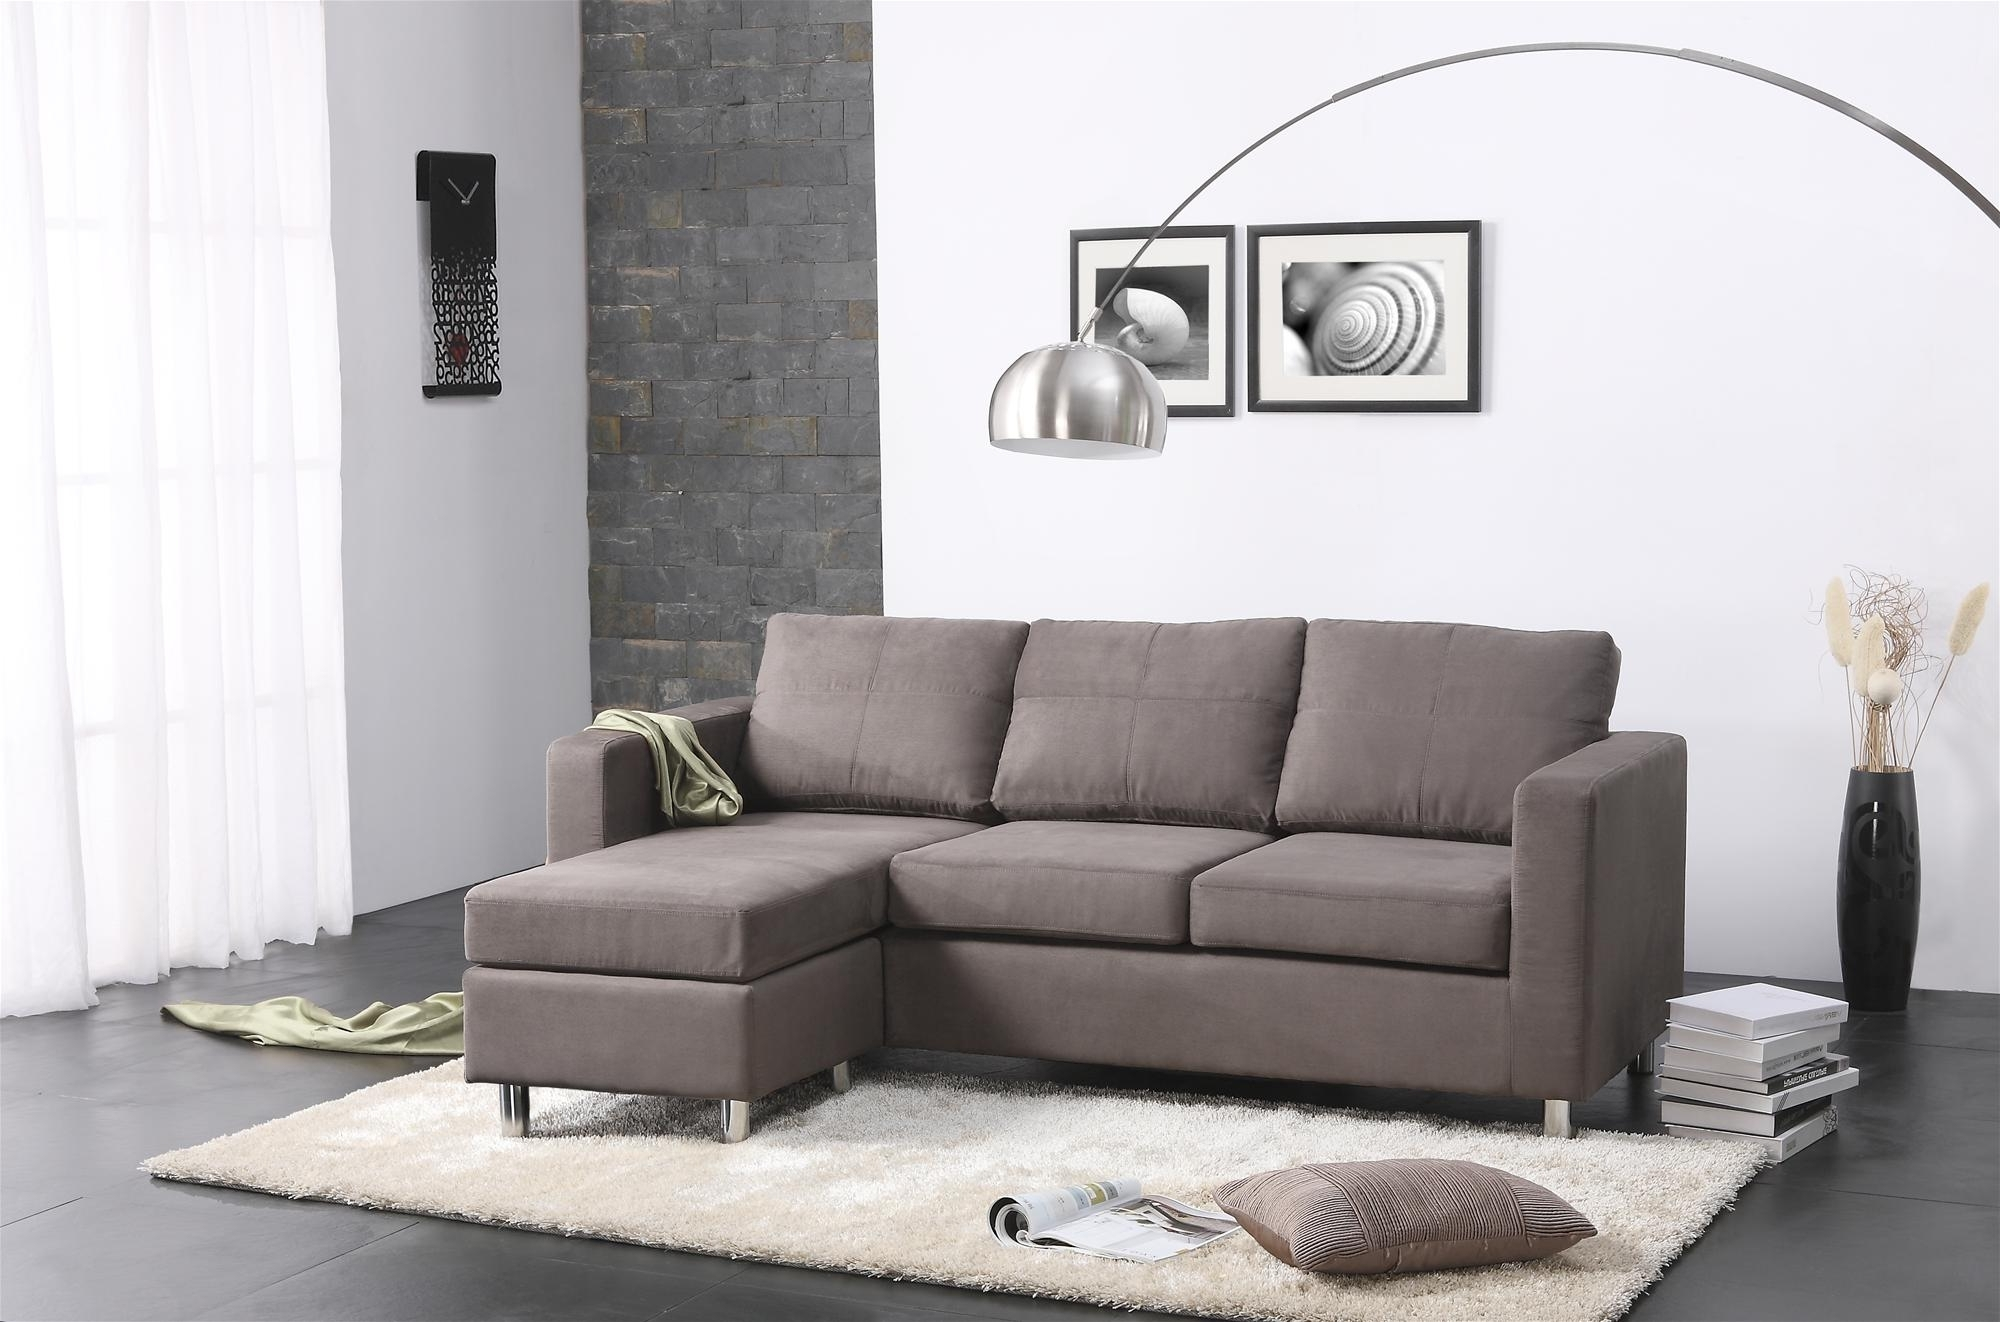 The Best Apartment Sectional Sofas Solving Function And Style With Favorite Apartment Sectional Sofas With Chaise (View 14 of 15)